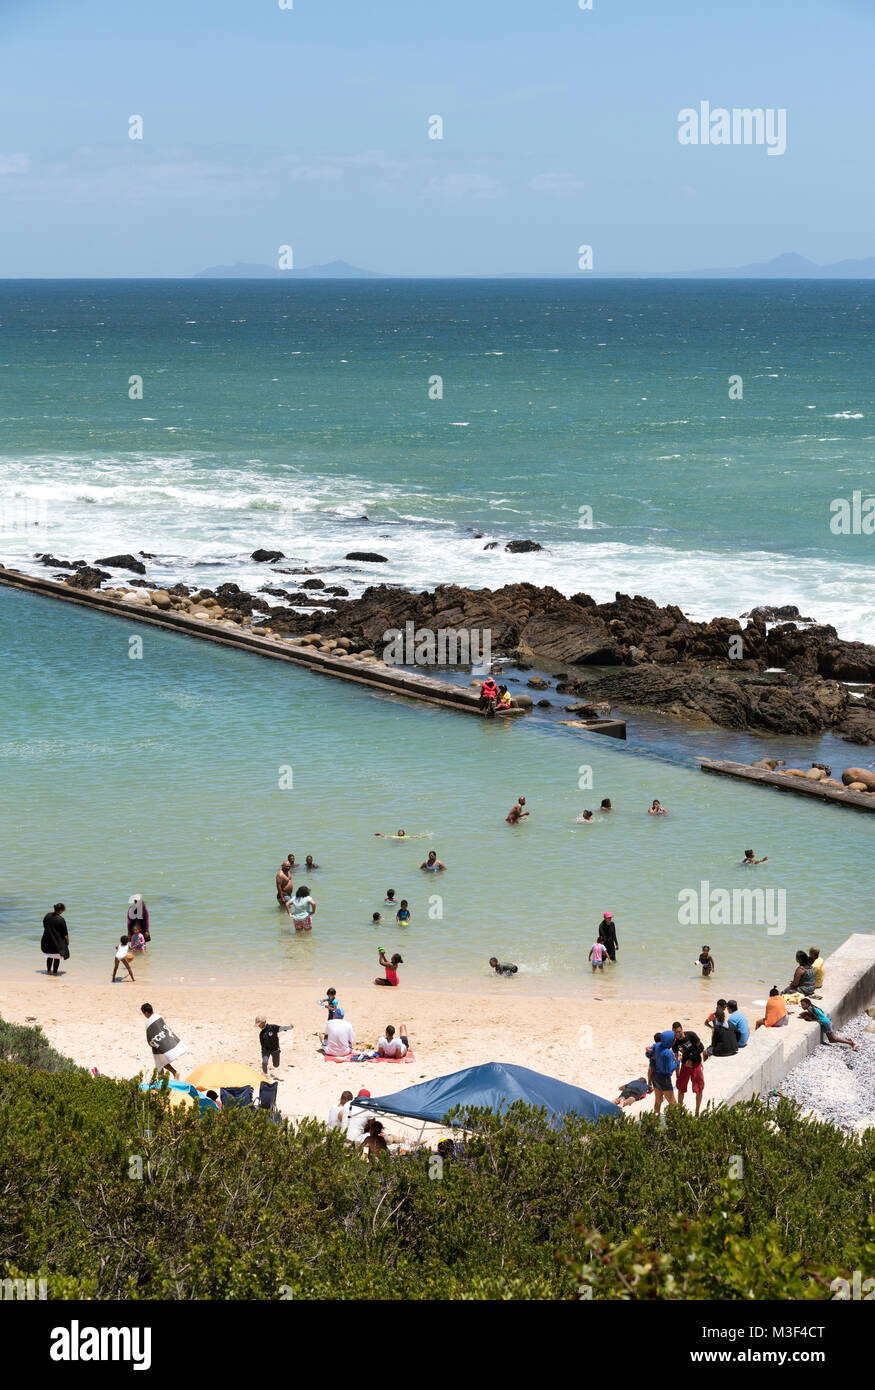 A saltwater swimming pool at Kogel Bay resort on False Bay, Western Cape, South Africa. - Stock Image